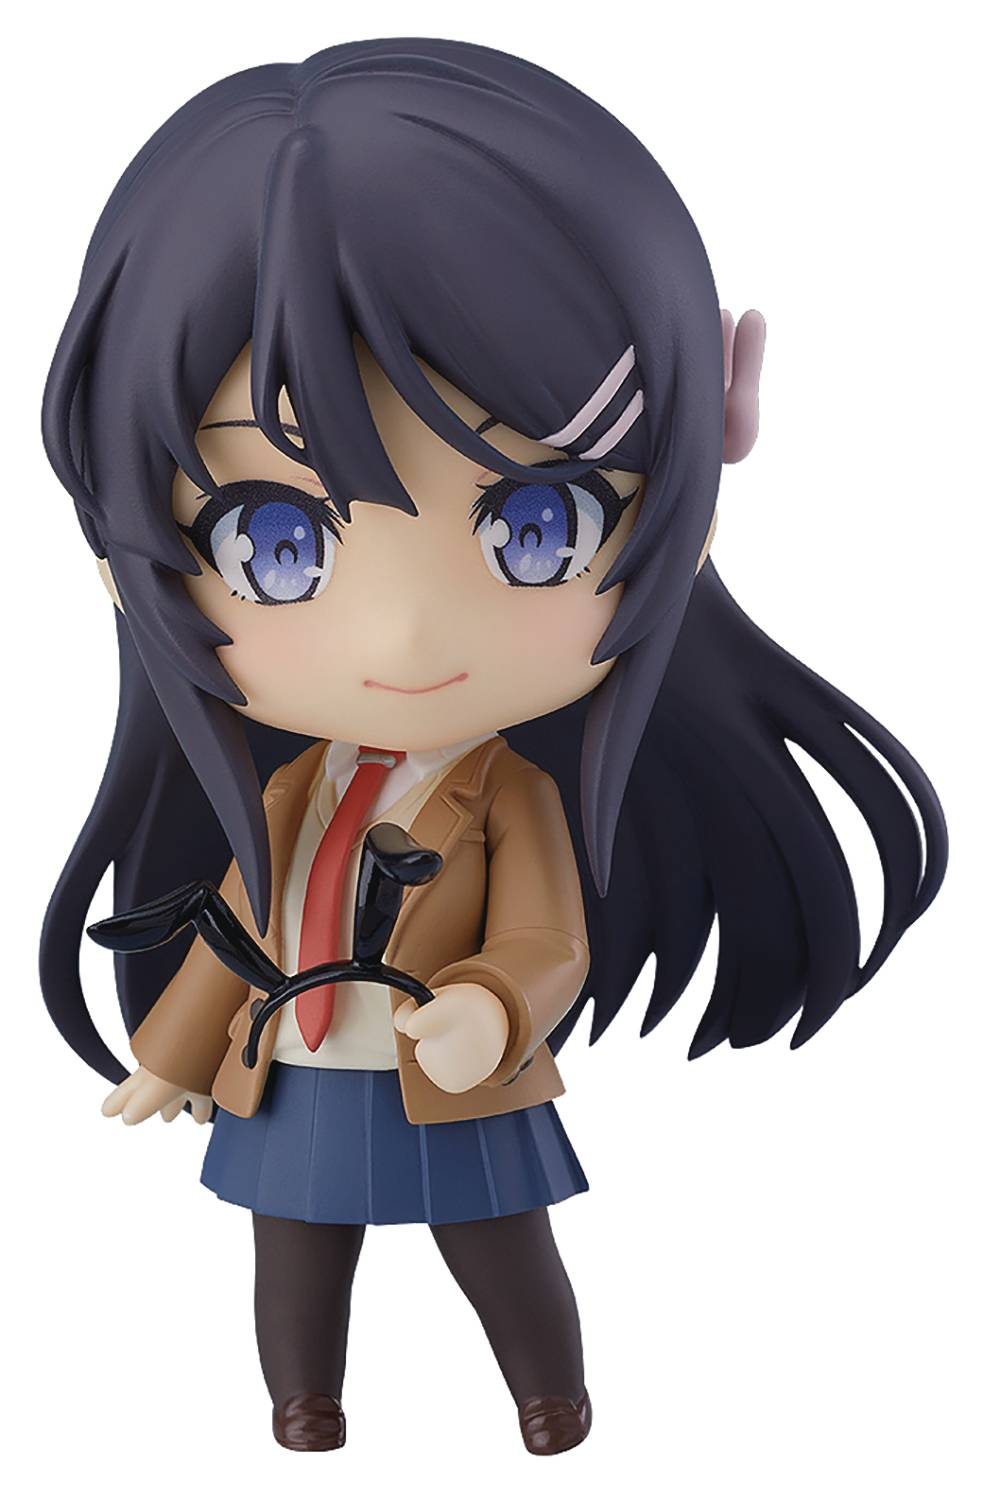 RASCAL DOES NOT DREAM OF BUNNY MAI SAKURAJIMA NENDOROID AF (